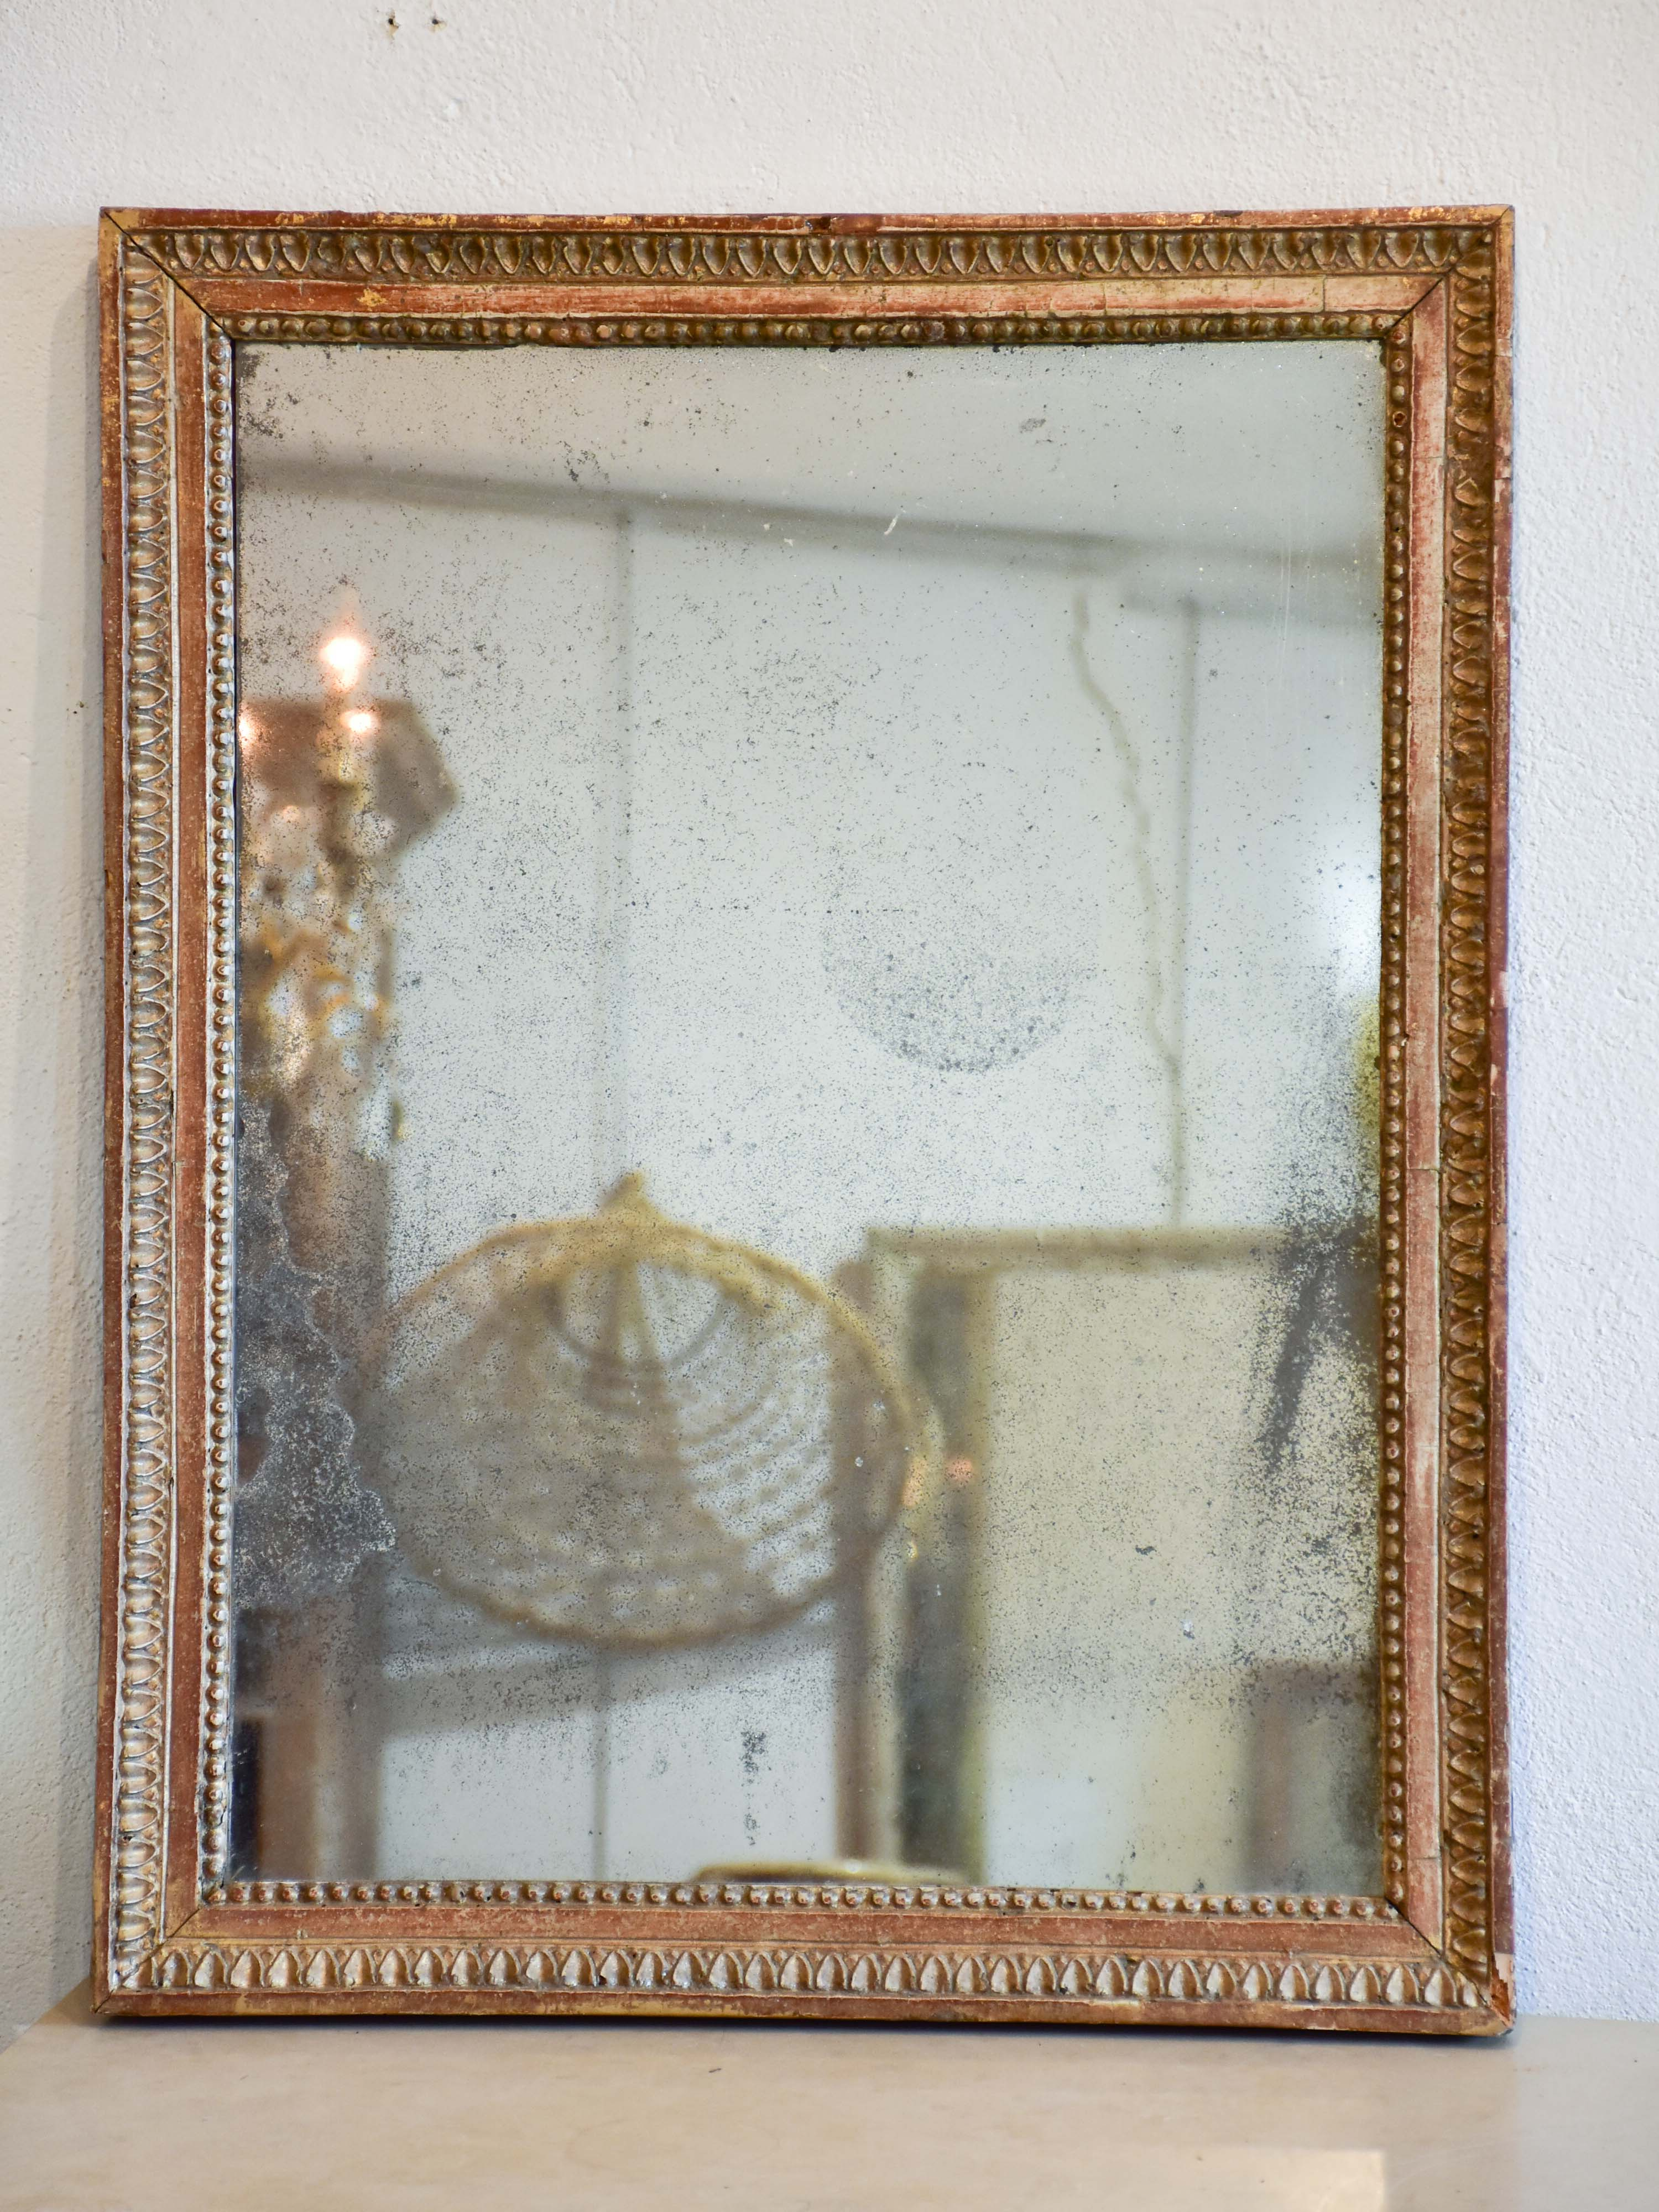 Original 18th century Louis XVI mirror